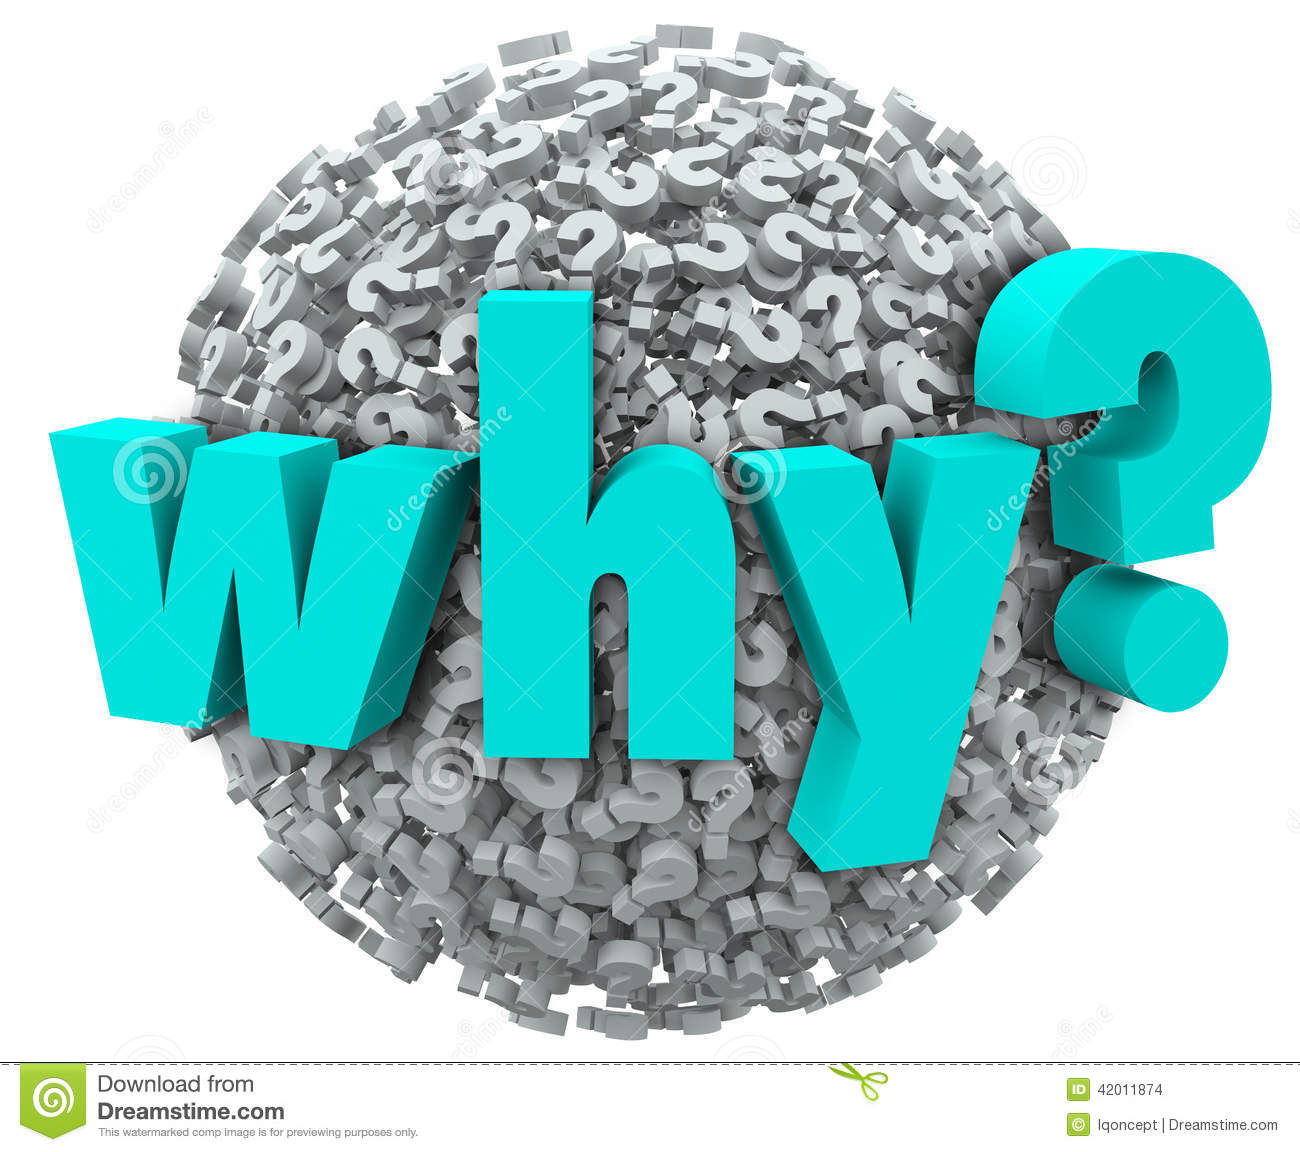 Why word in 3d letters on a sphere of question marks to illustrate ...